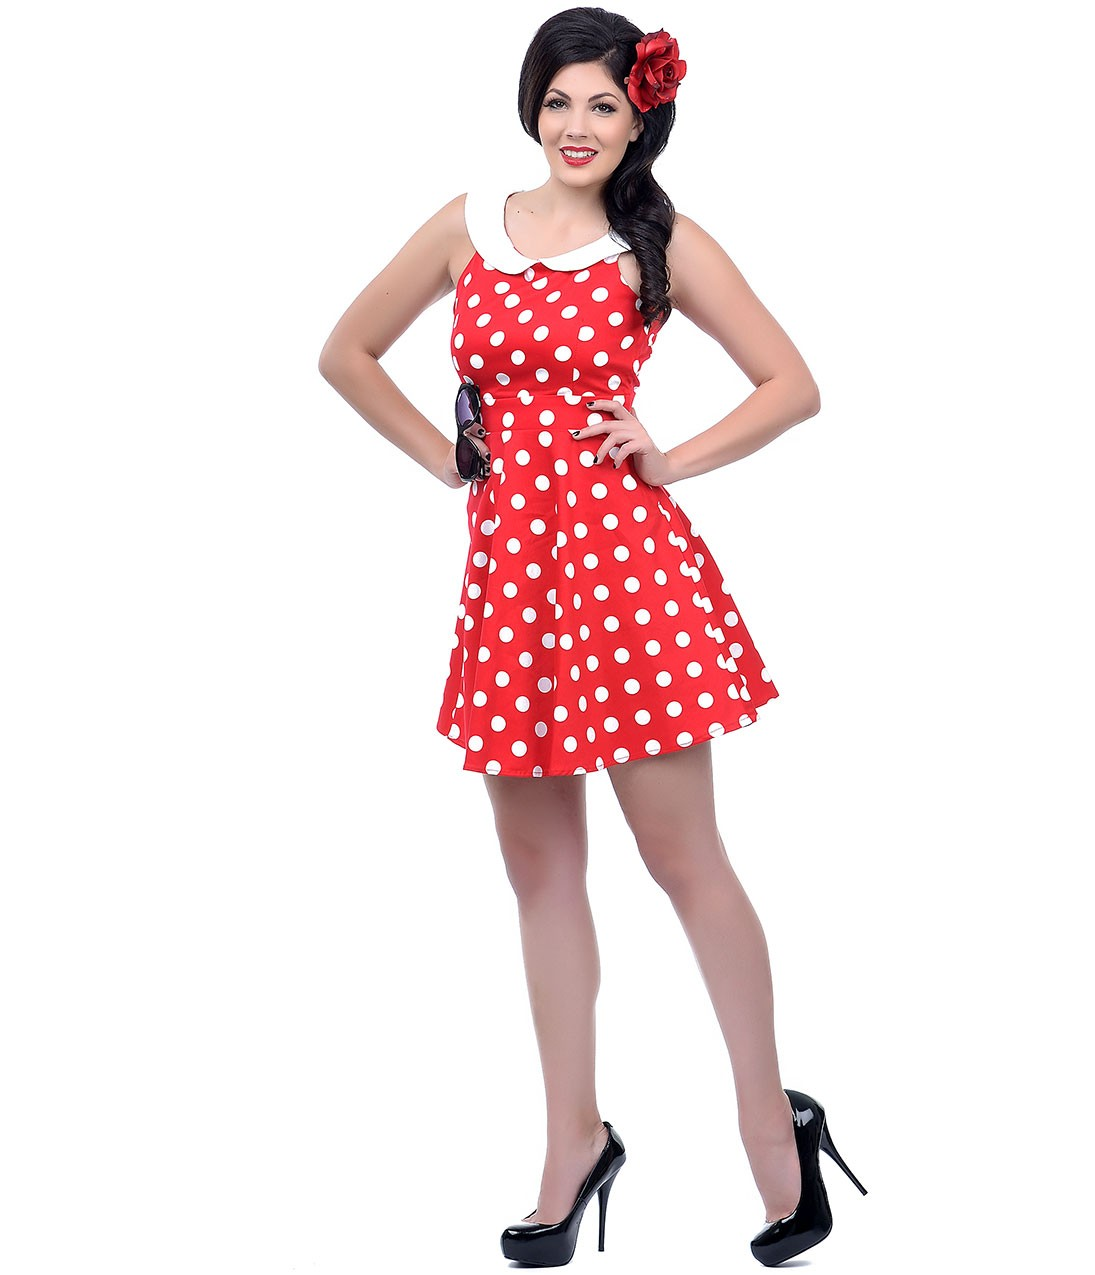 Polka Dot Girl